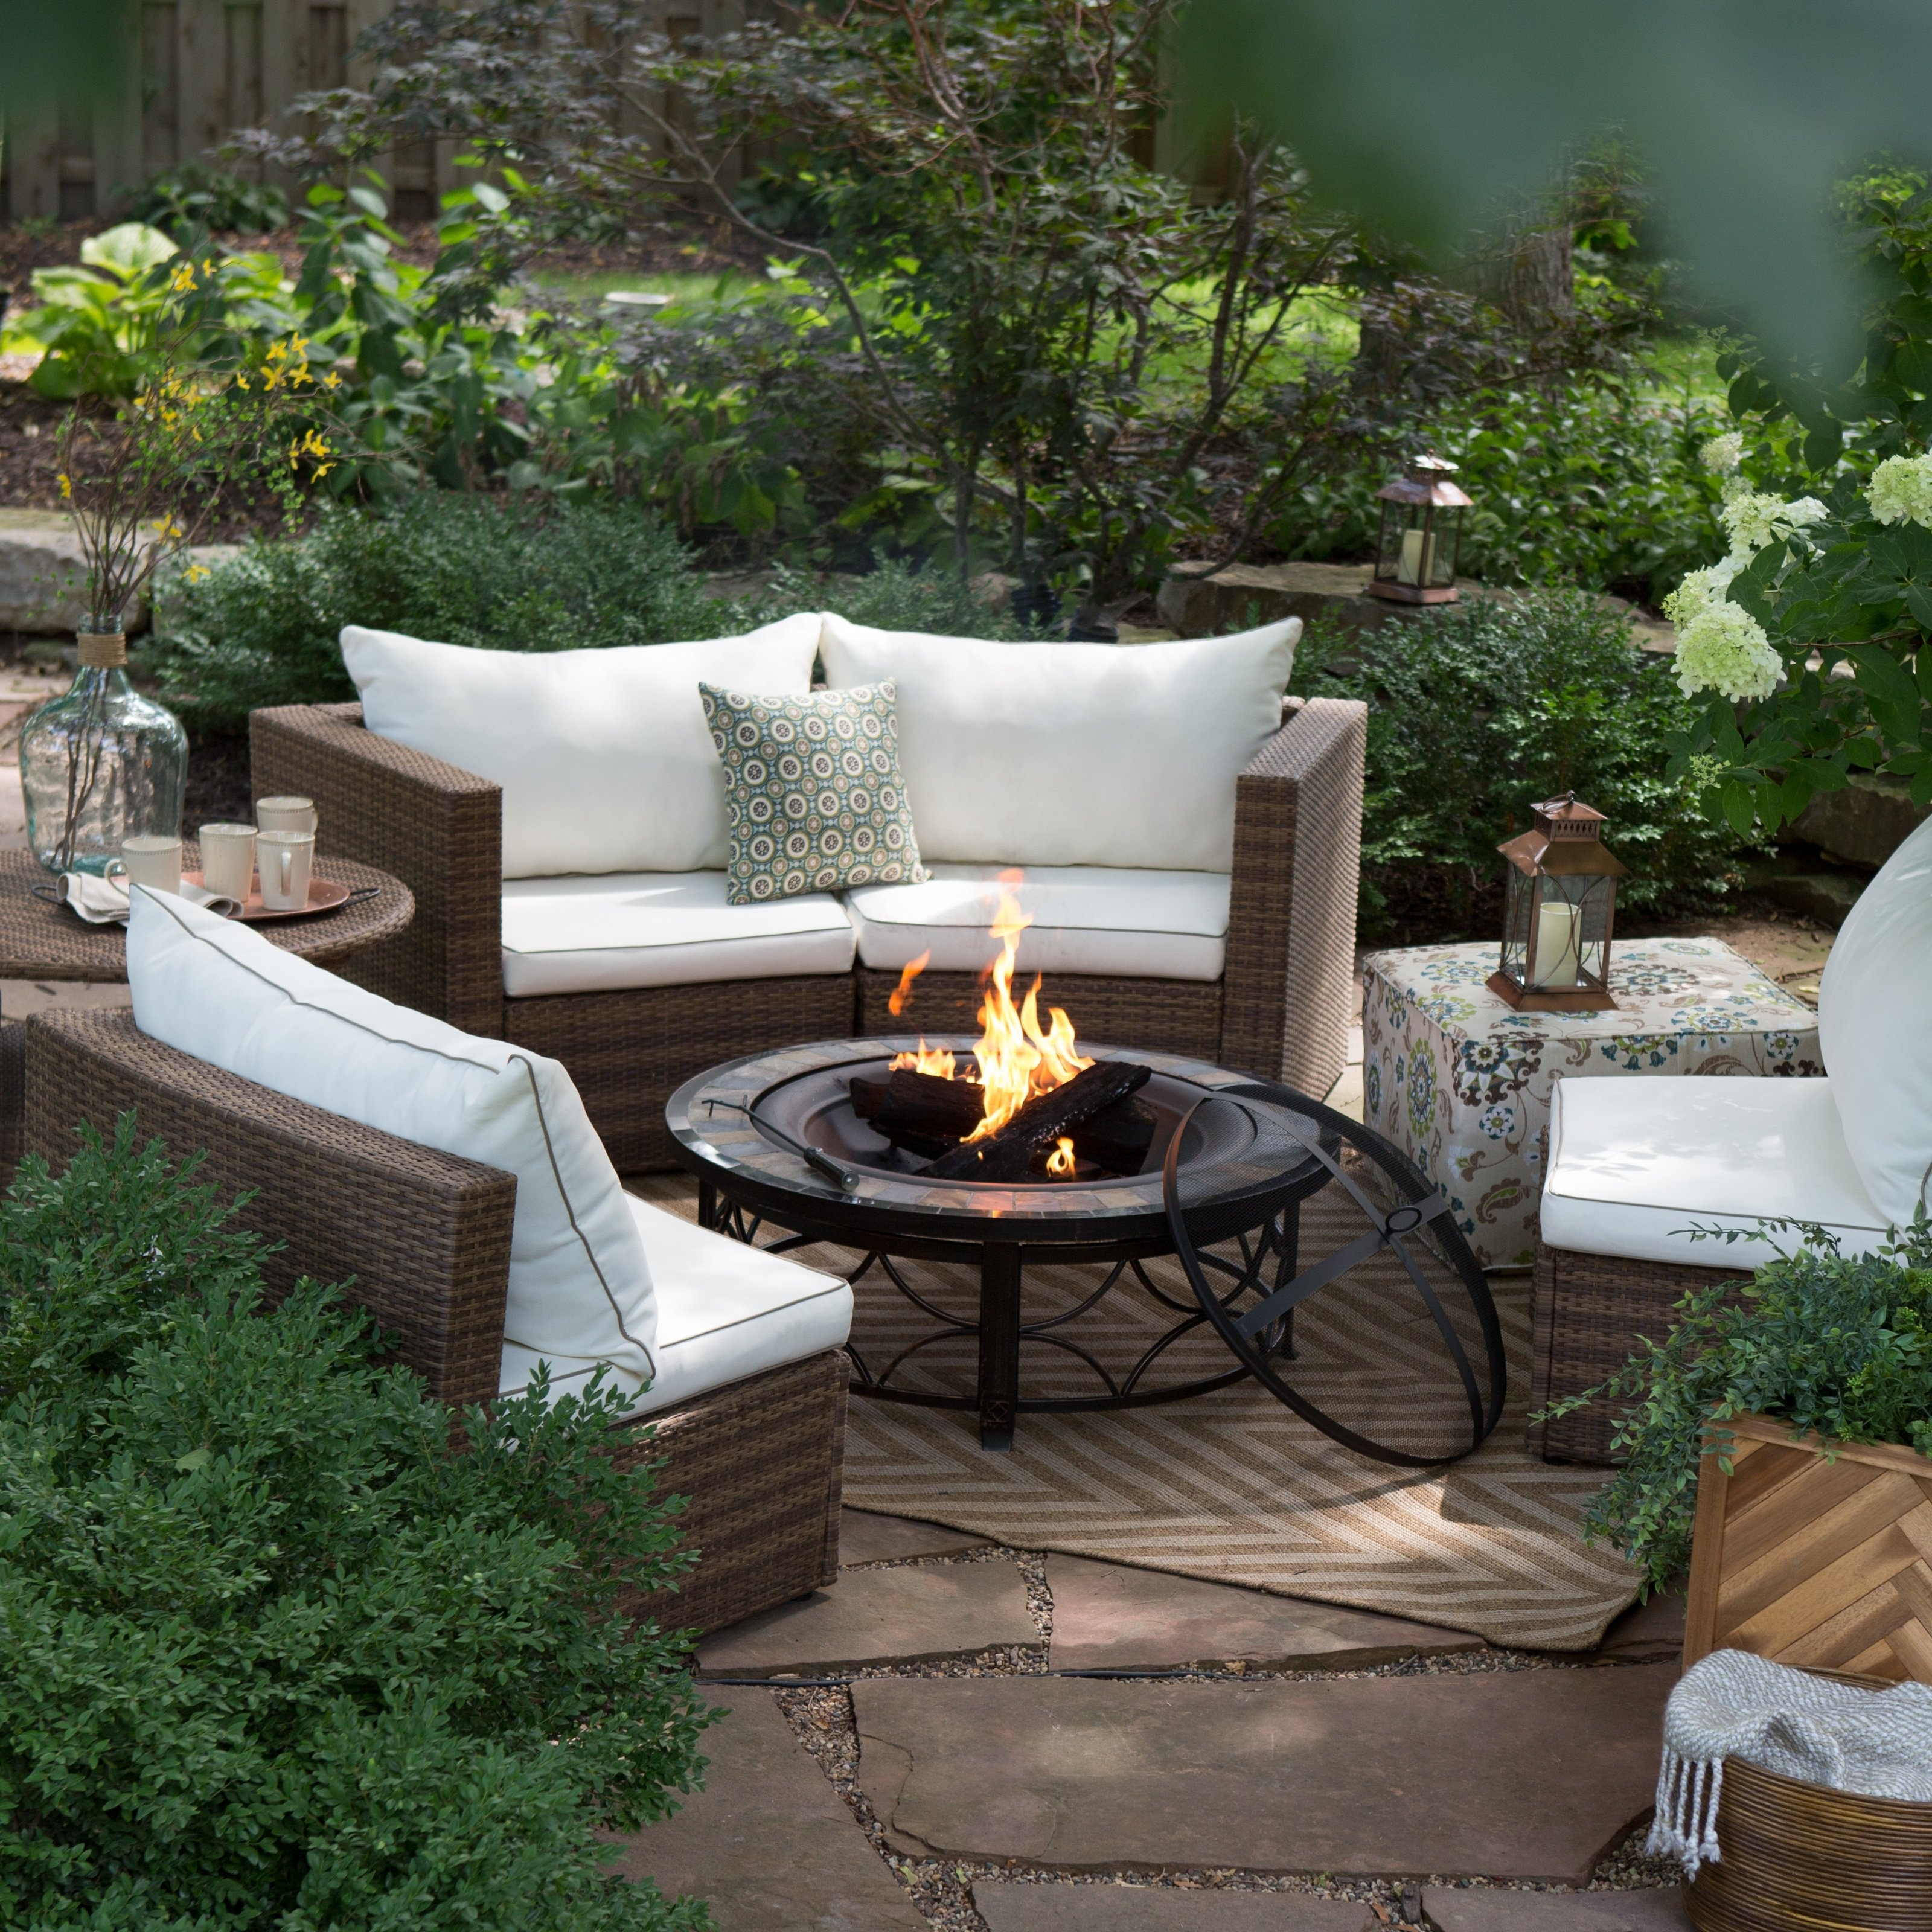 Best And Newest Patio Conversation Sets With Propane Fire Pit Regarding Decoration : Fire Pit Chairs Fire Pit Set Outdoor Propane Fire Pit (View 15 of 20)